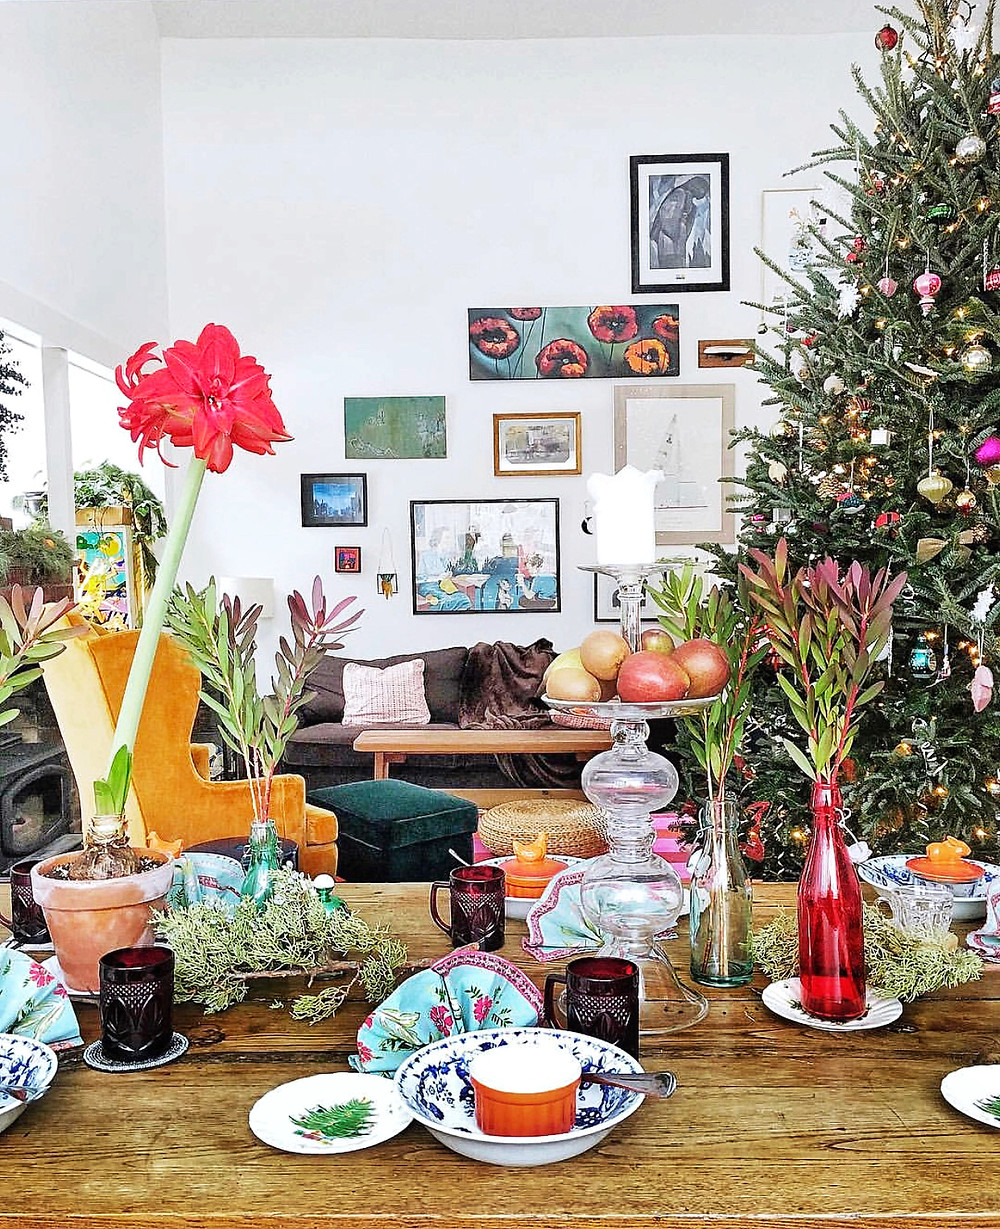 Christmas tree, gallery wall and dining table set up for holiday lunch